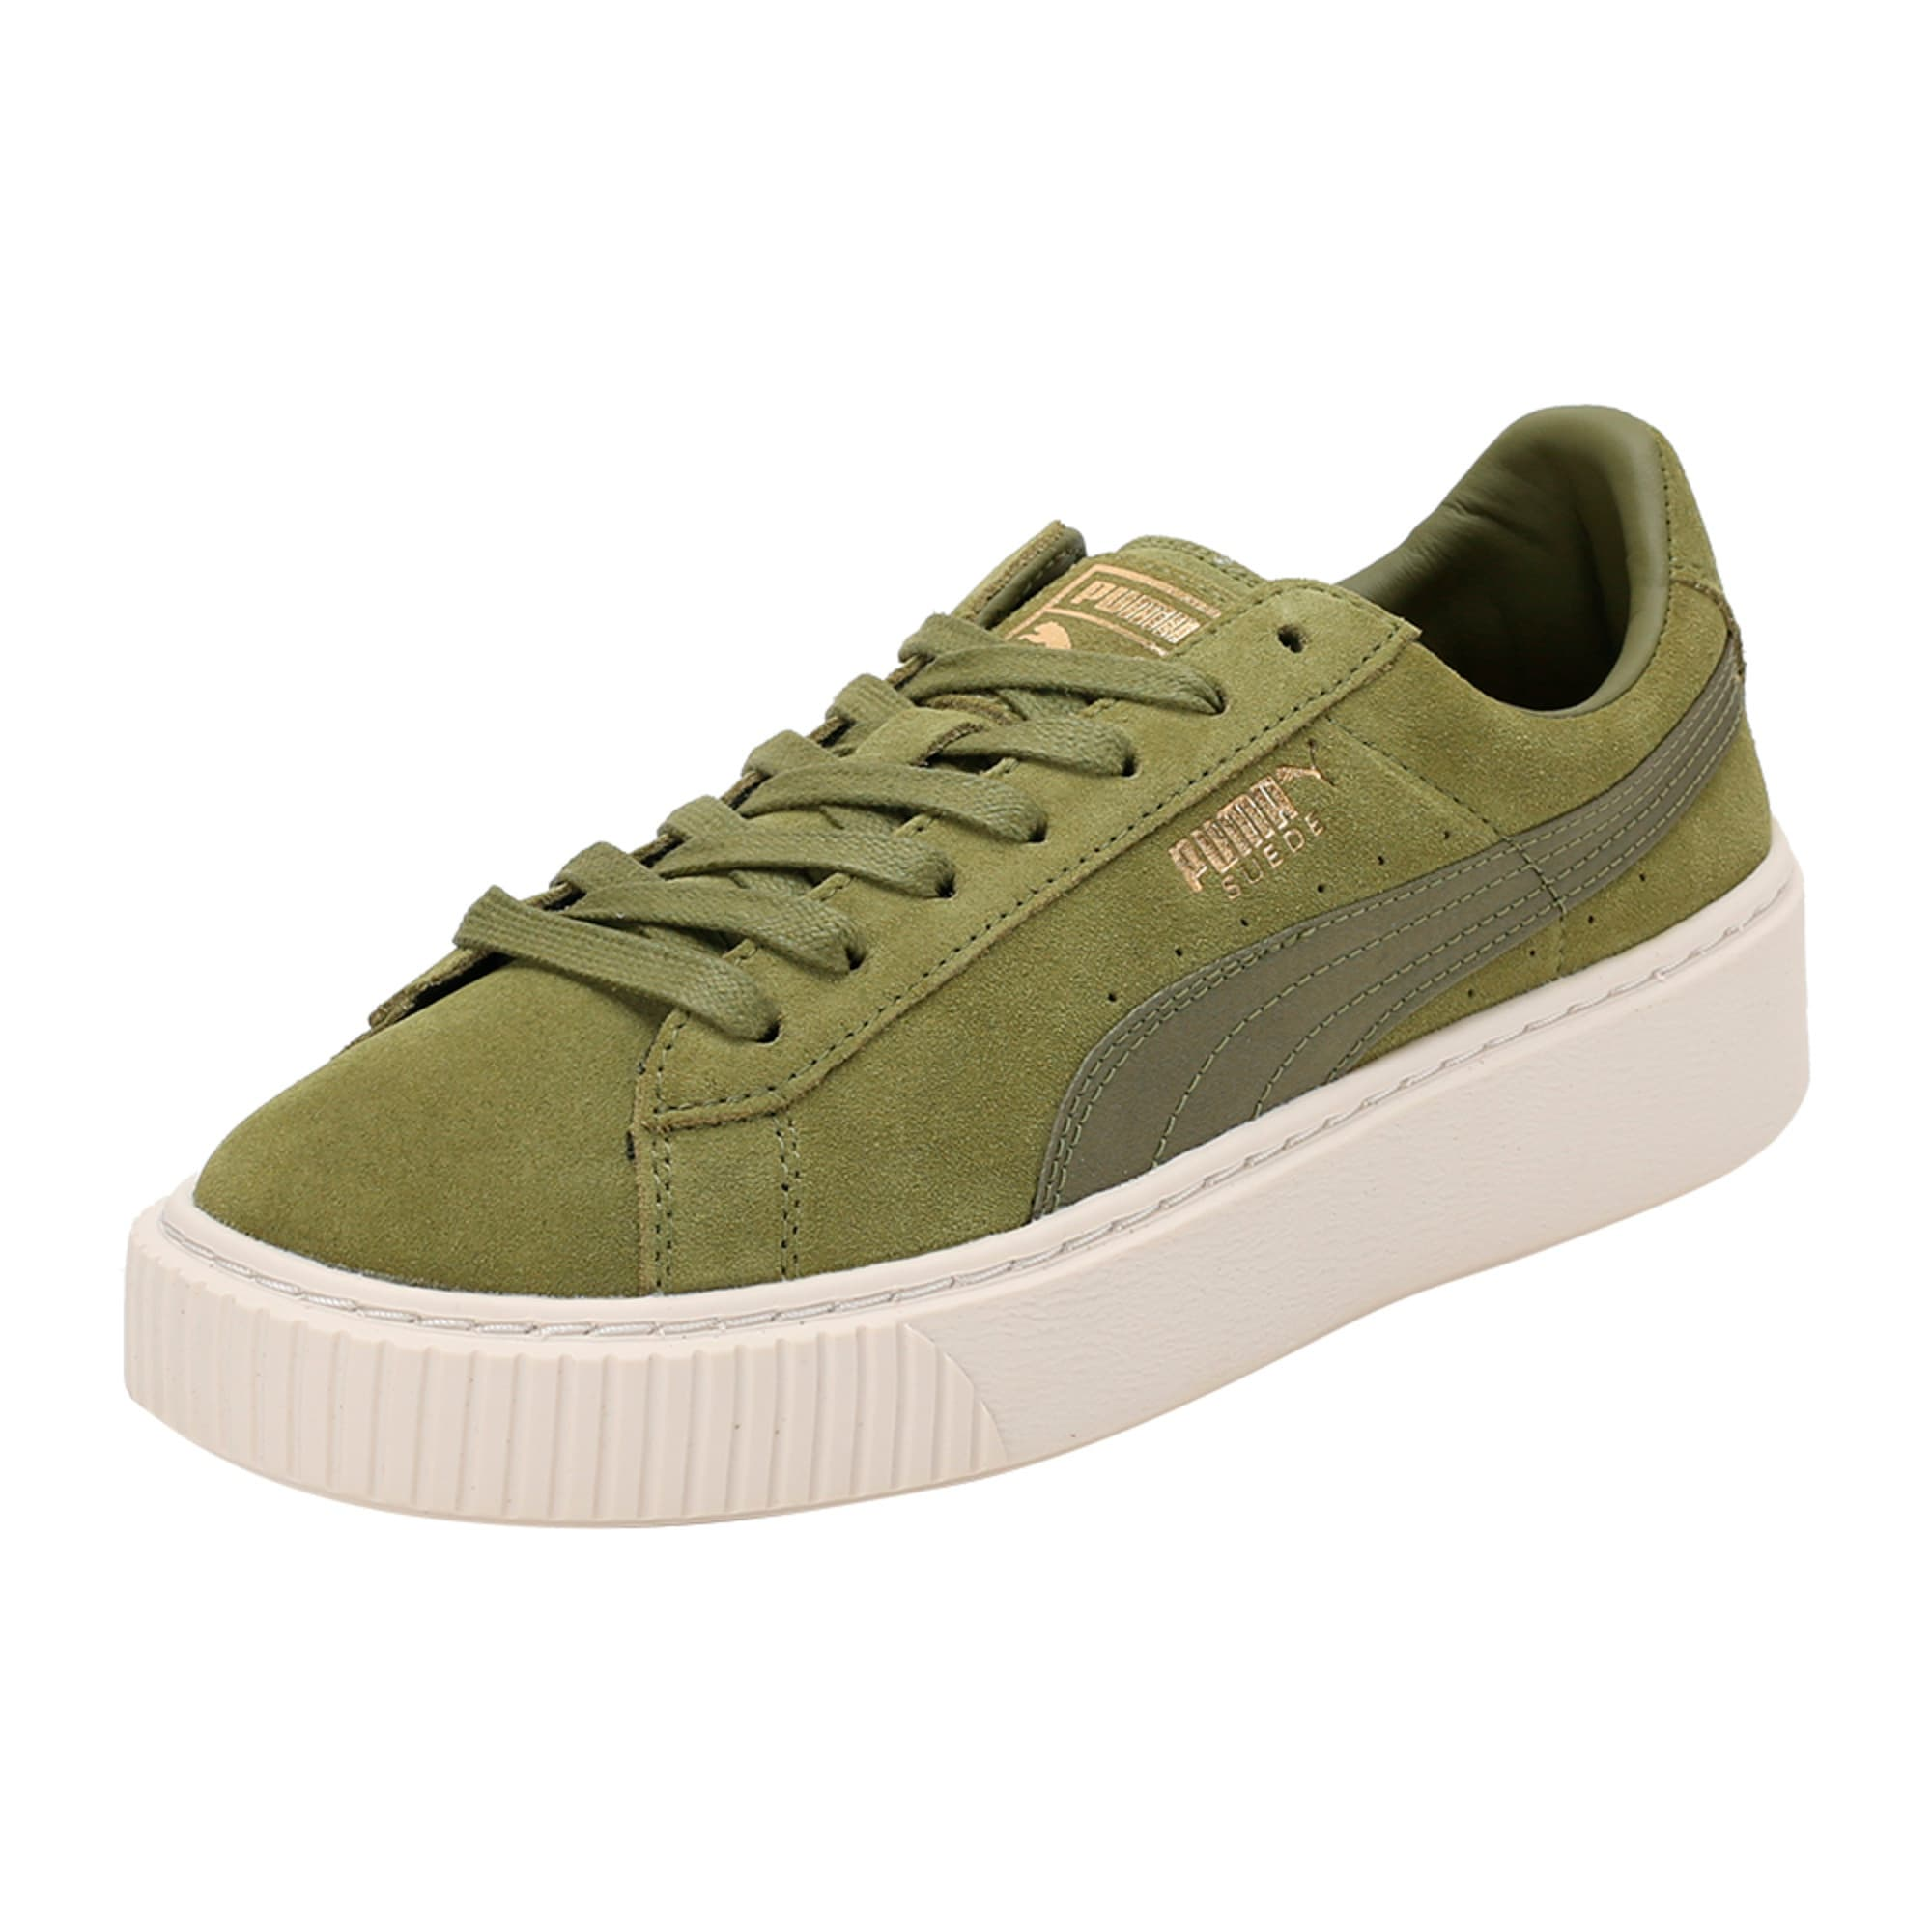 Thumbnail 1 of Suede Platform Satin Women's Trainers, Olive Branch-Whisper- Gold, medium-IND